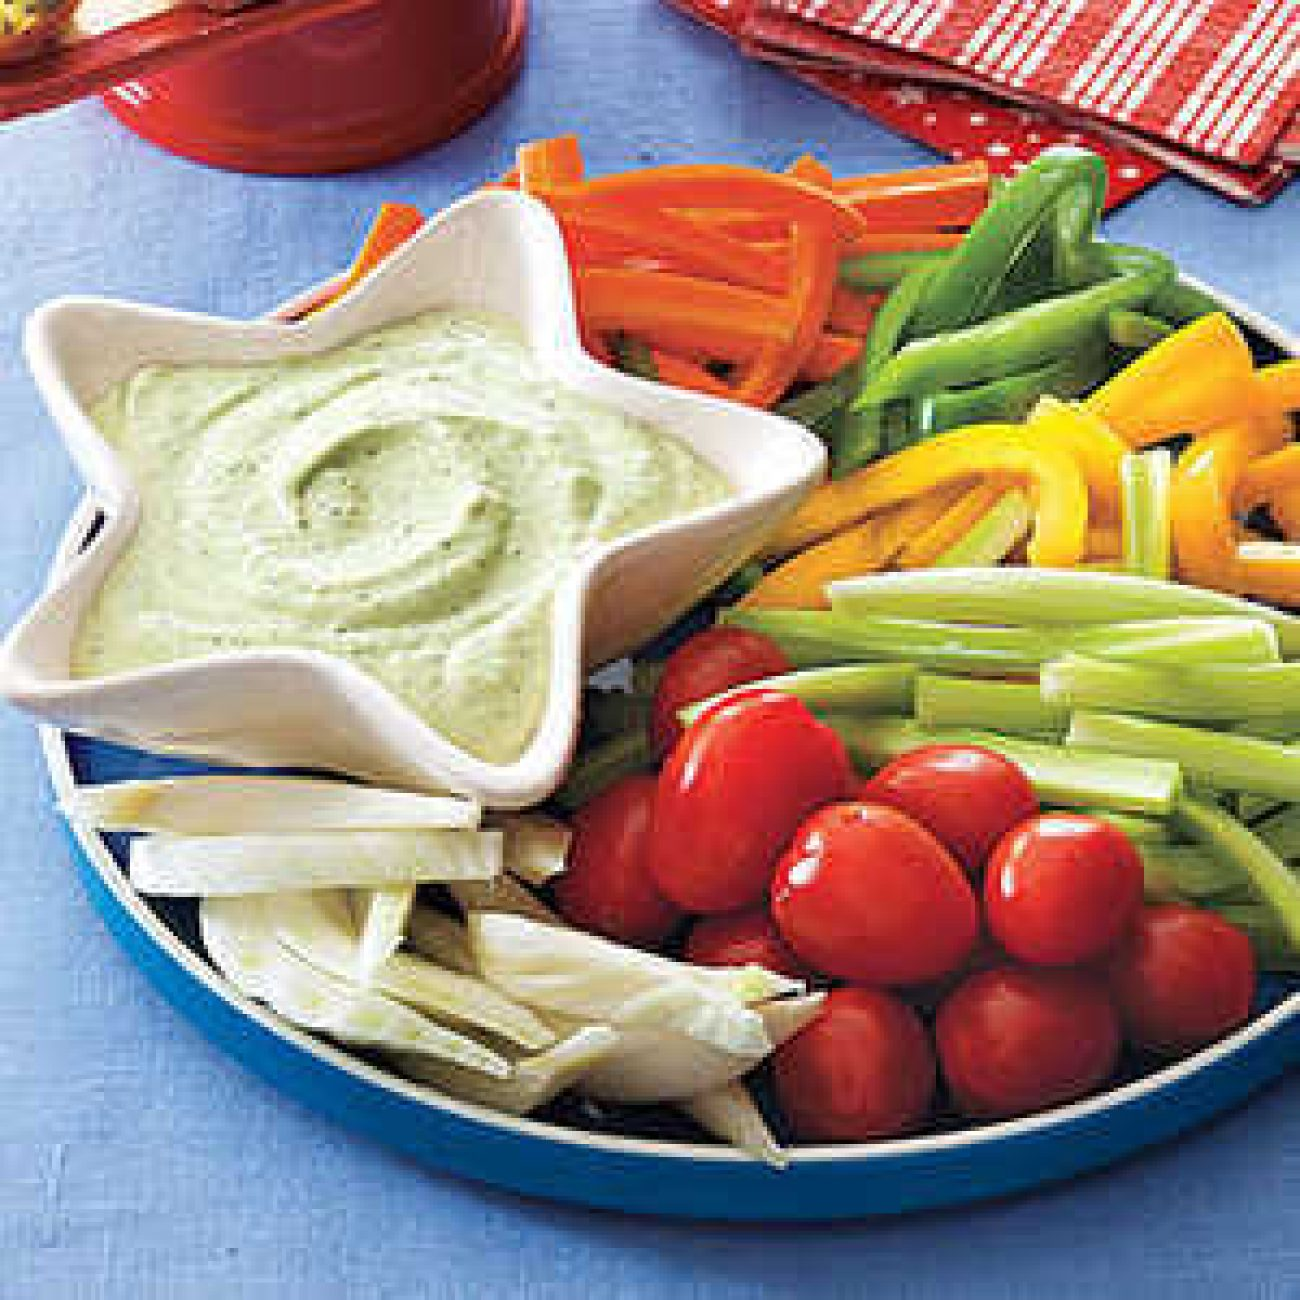 Green Goddess Dip with Crudités